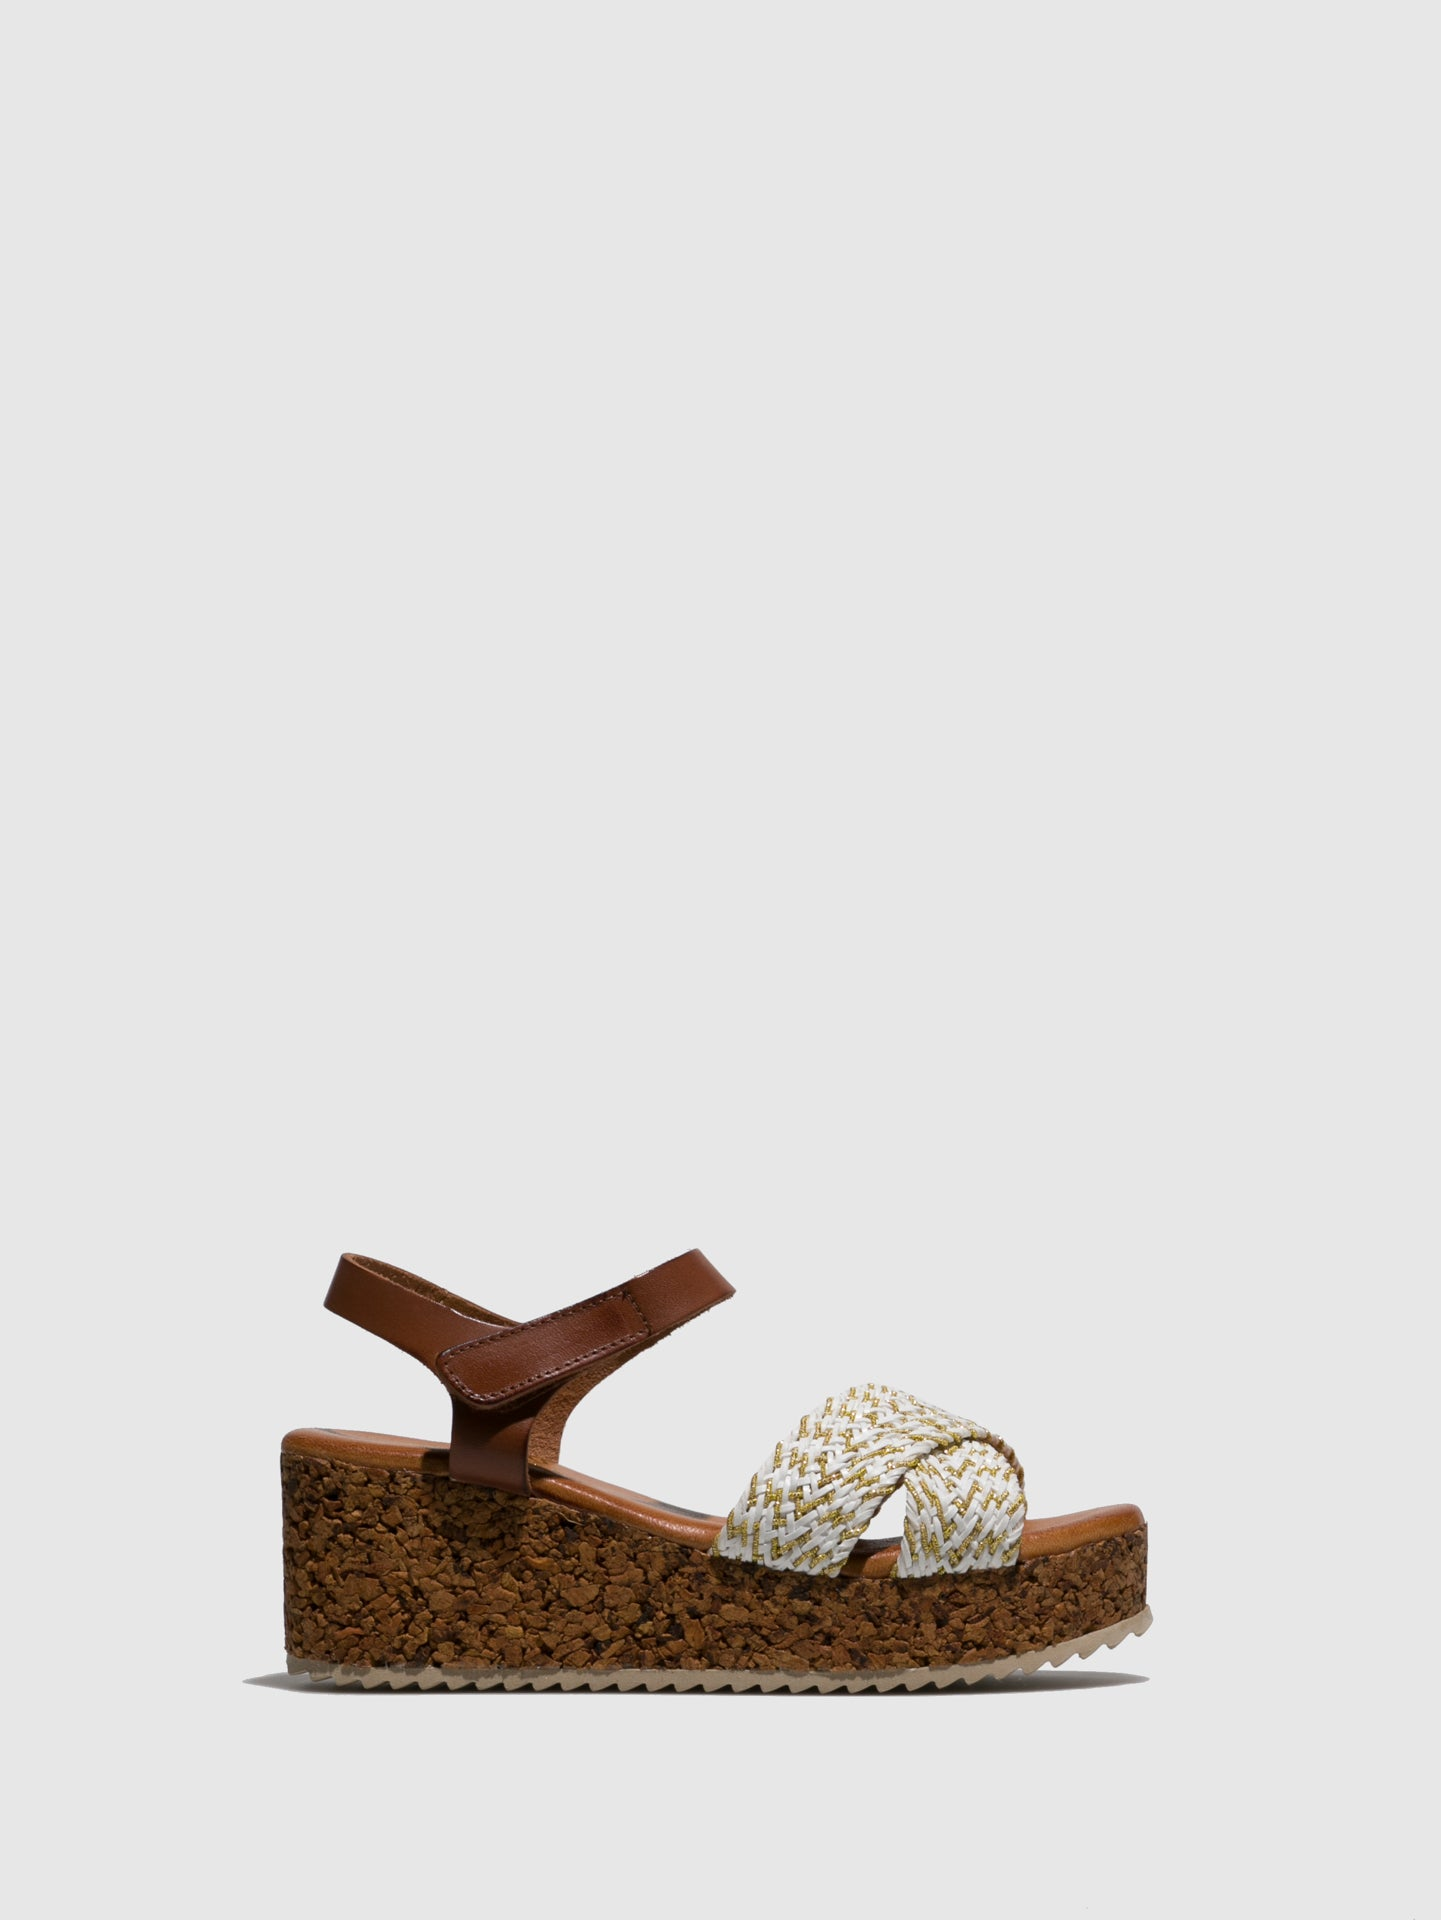 Marila Shoes Brown White Wedge Sandals